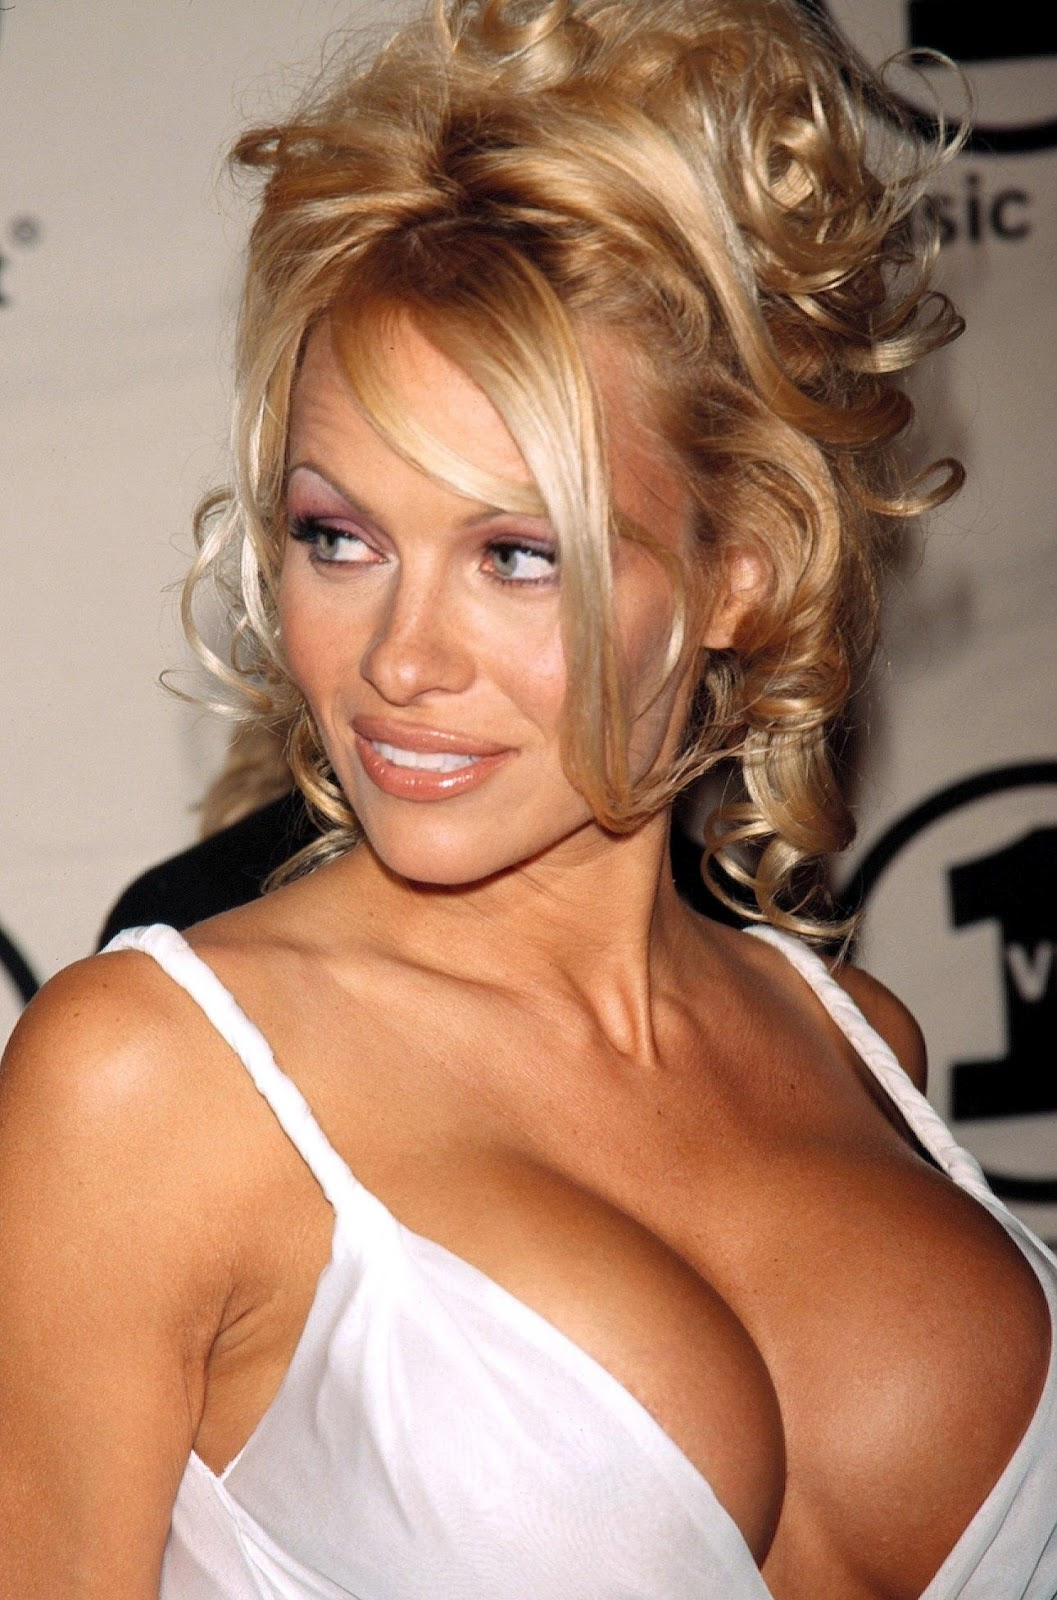 Hollywood All Stars Pamela Anderson Hot Pictures In 2012-5165